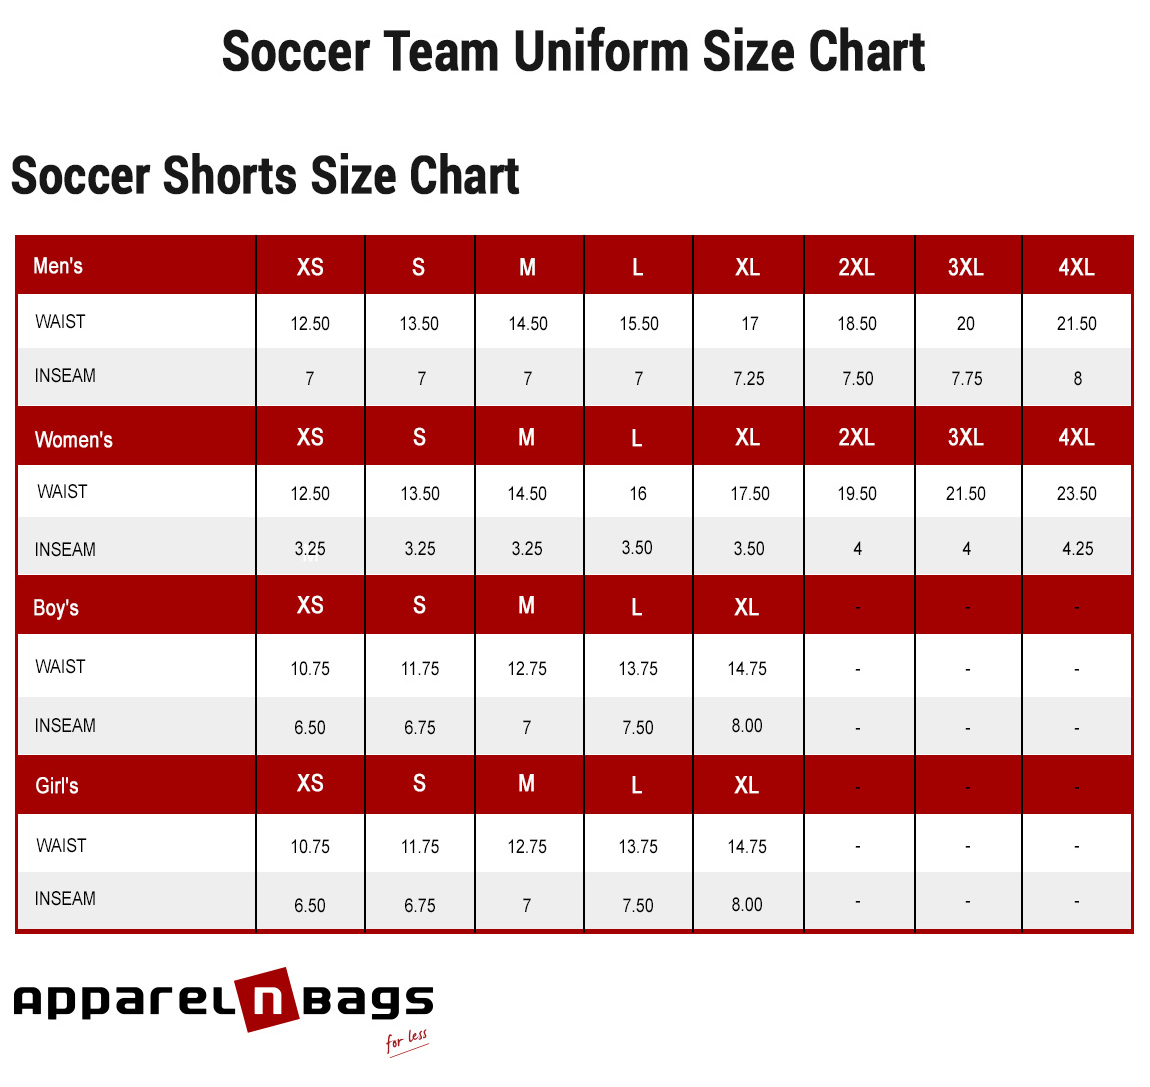 Soccer Shorts Size Chart